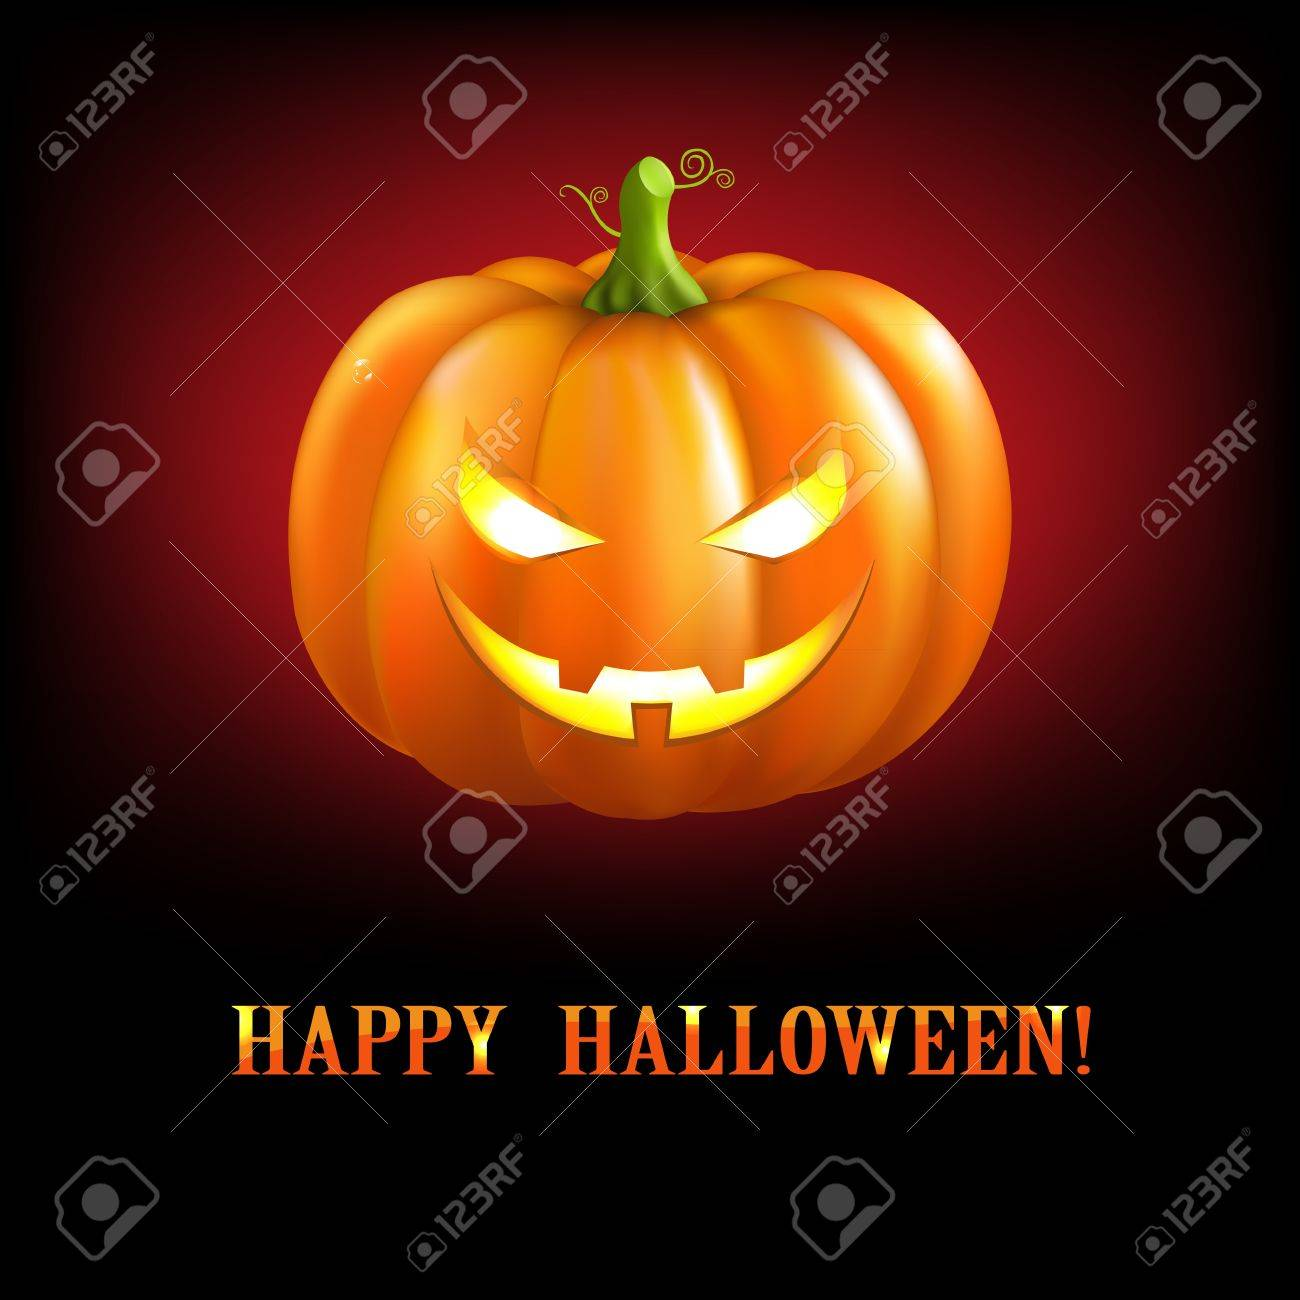 Black Halloween Illustrations With Pumpkins, Illustration Stock Vector - 15544904